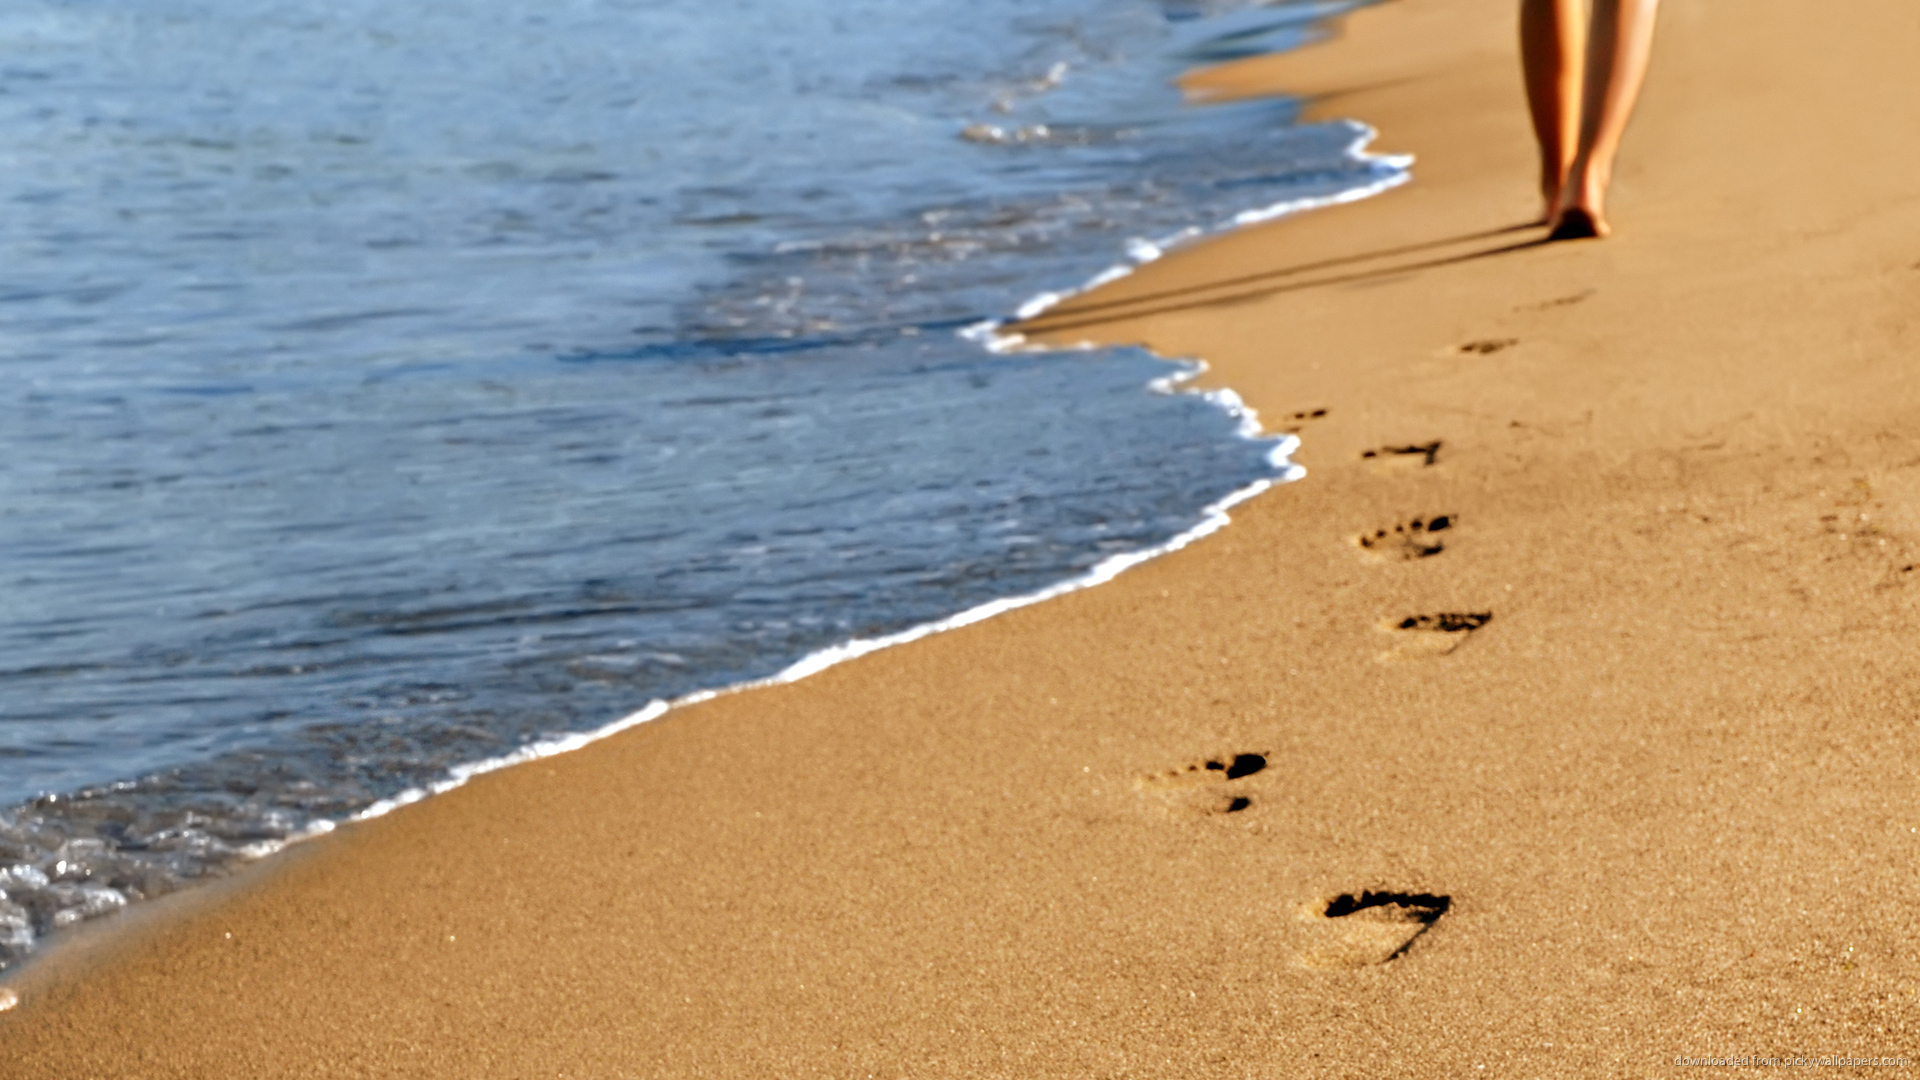 Beautiful Beach Footprints Wallpaper Picture For iPhone Blackberry 1920x1080